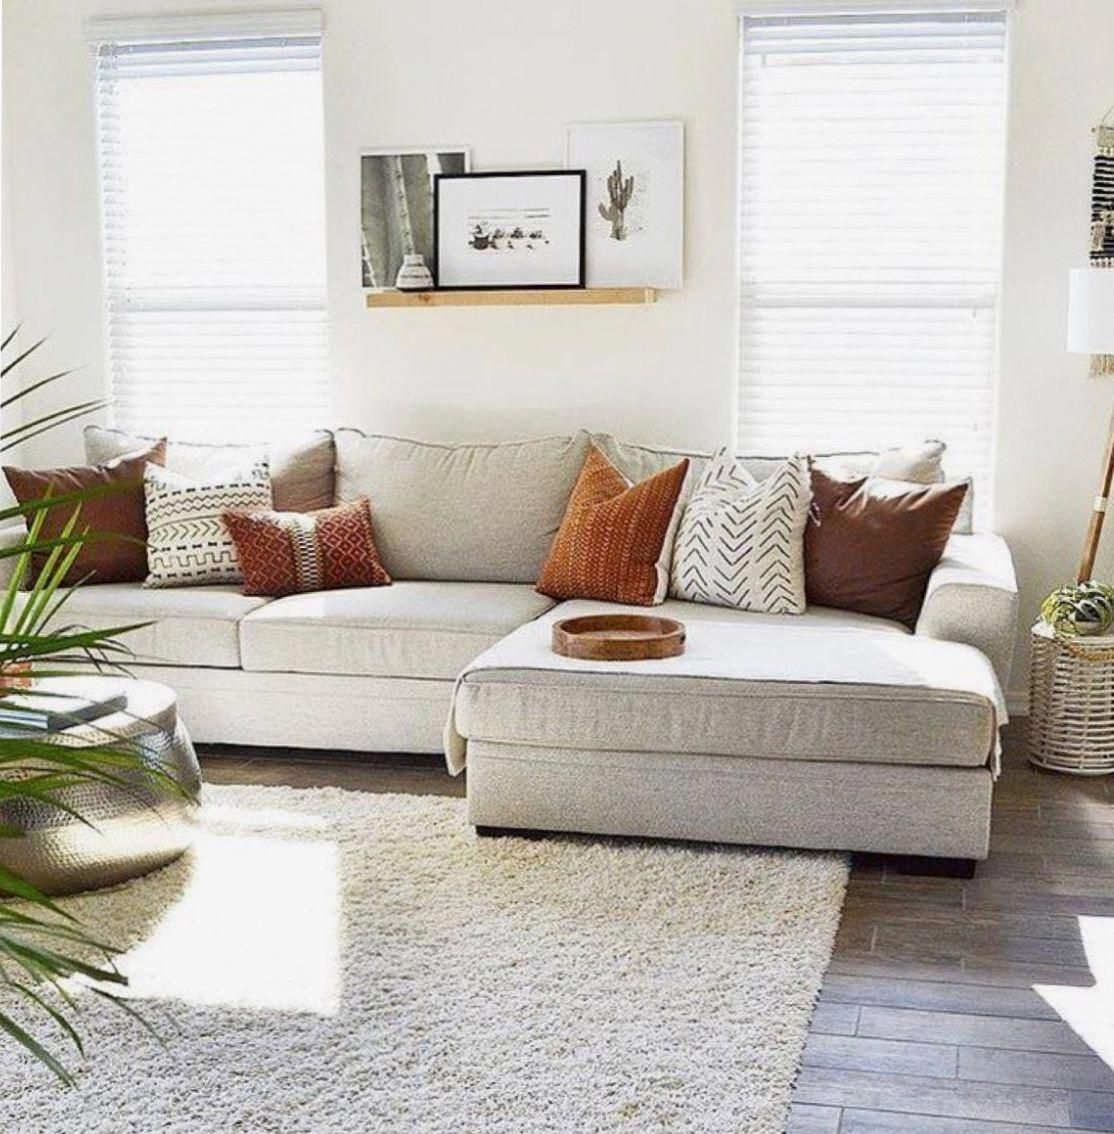 Small living room decorating ideas decorative accessories for picture also rh pinterest